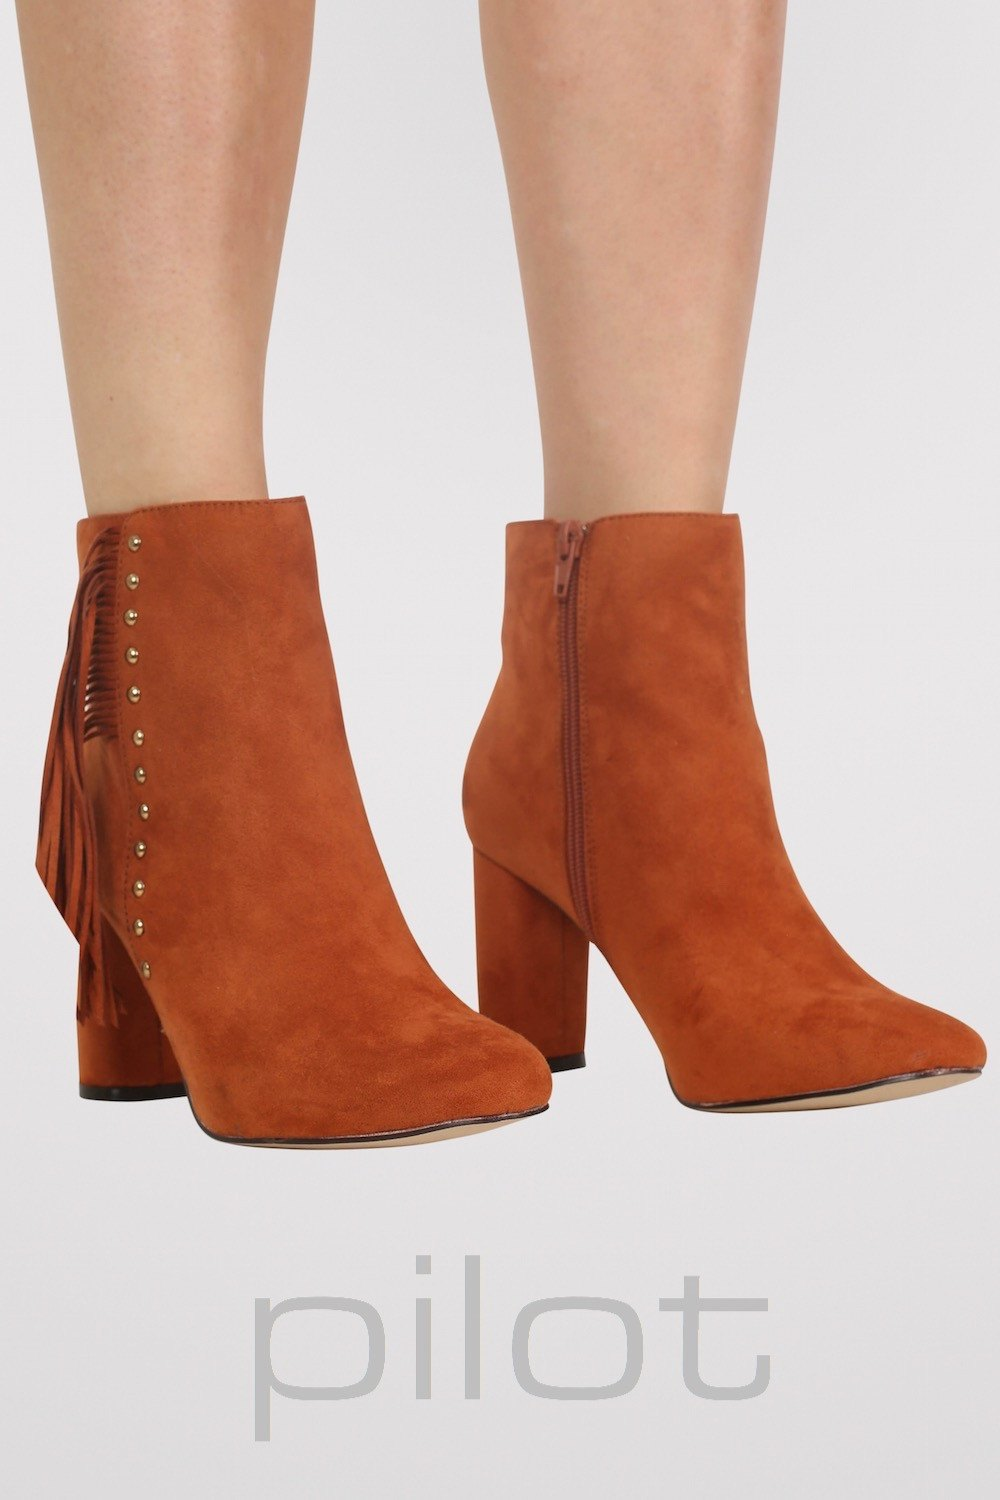 Fringe Stud Detail Ankle Boots in Tan Brown MODEL FRONT